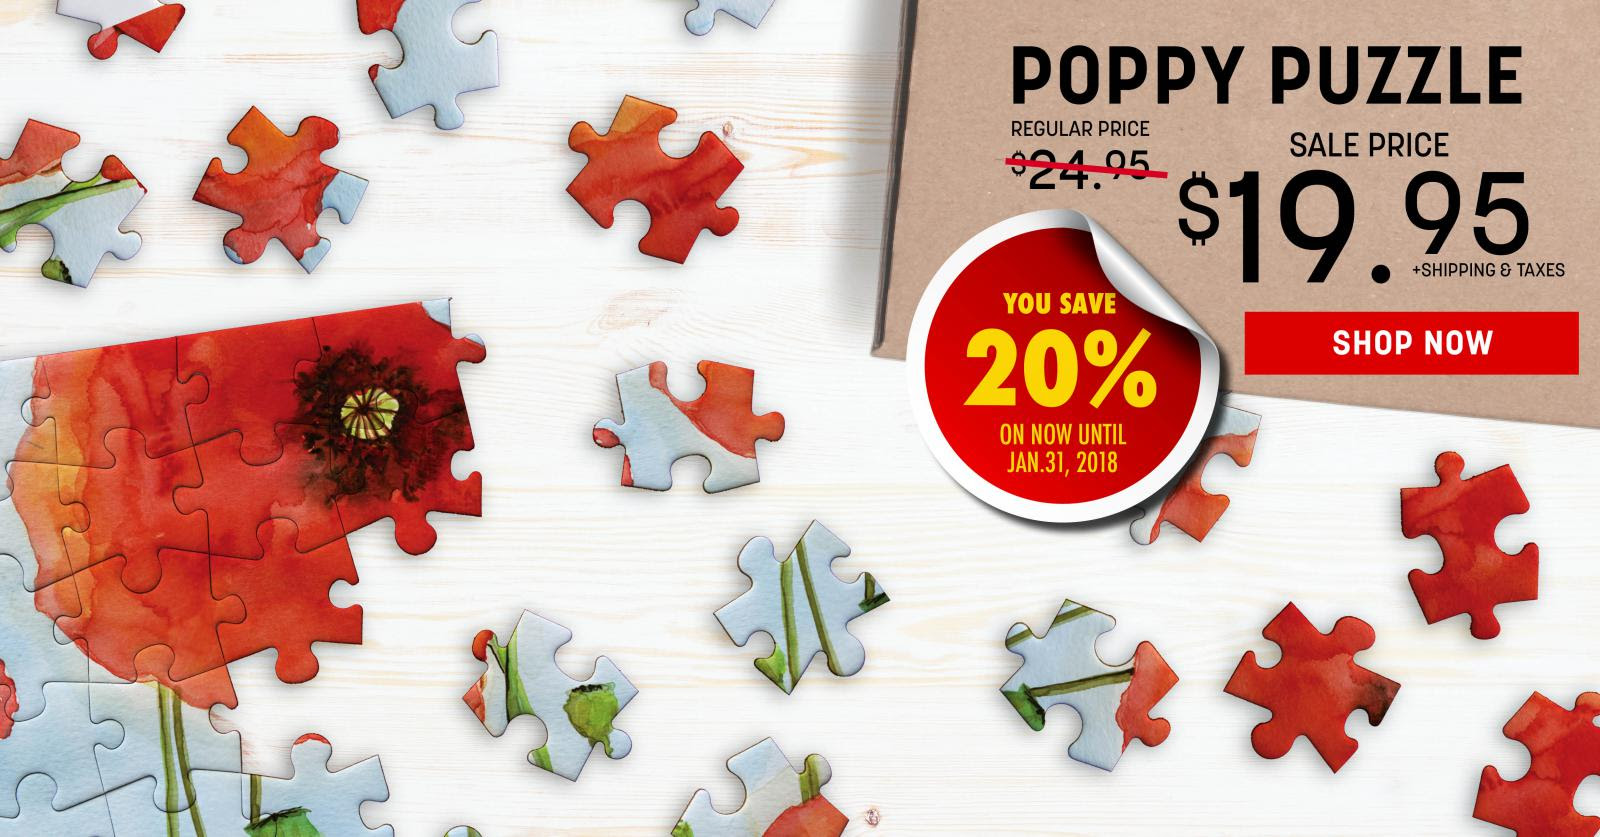 Poppy Puzzle Sale! Get for only $19.95. Save 20%